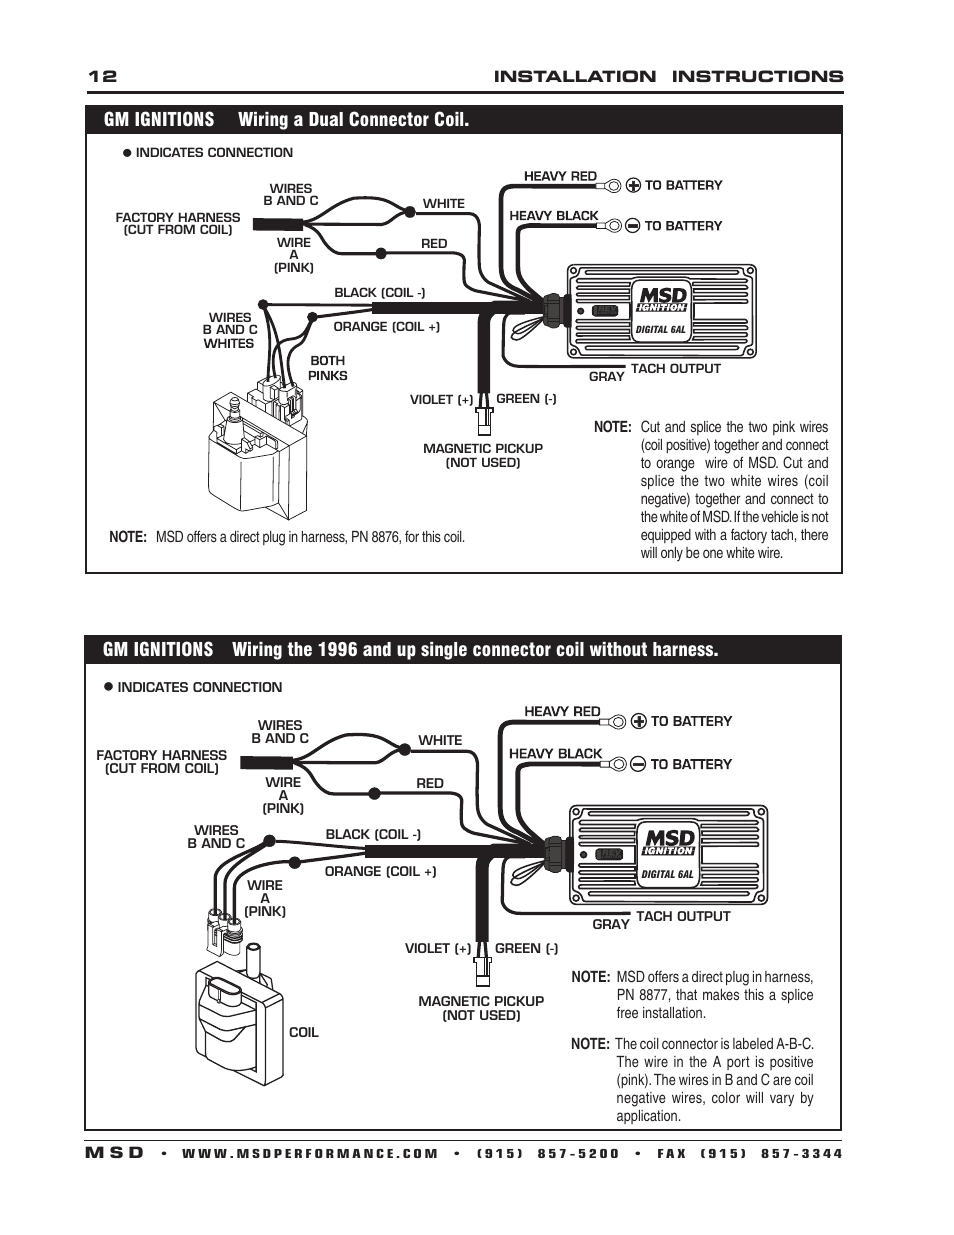 Msd 6201 Ignition Wiring Diagram Schematics Ready To Run Gm Ignitions A Dual Connector Coil Digital 6a 8950